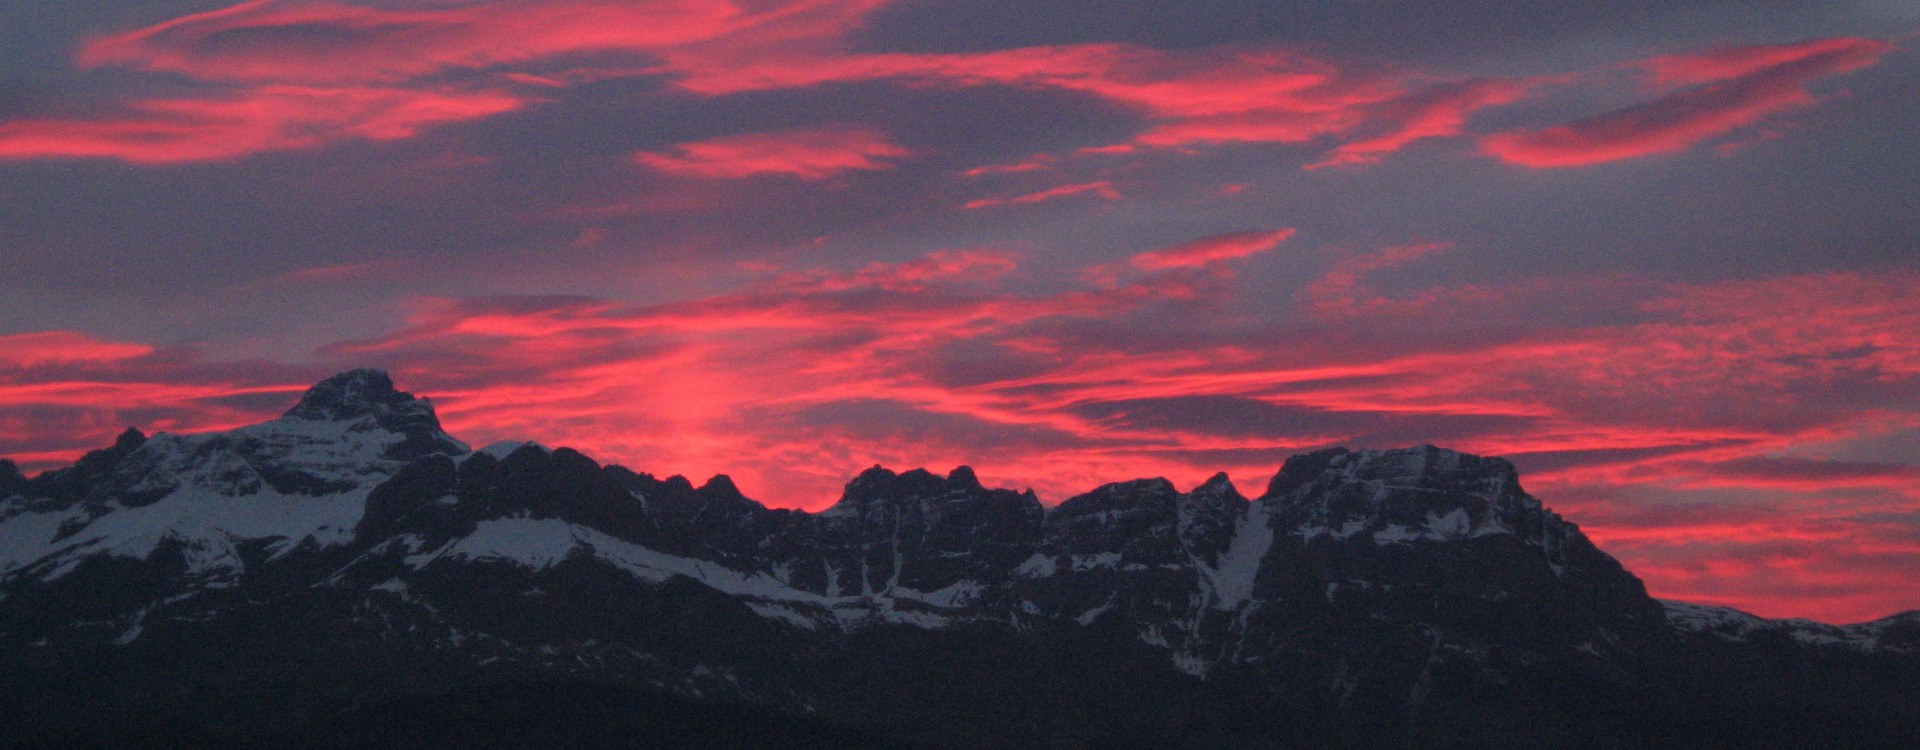 Aravis Mountain Chain at sunset